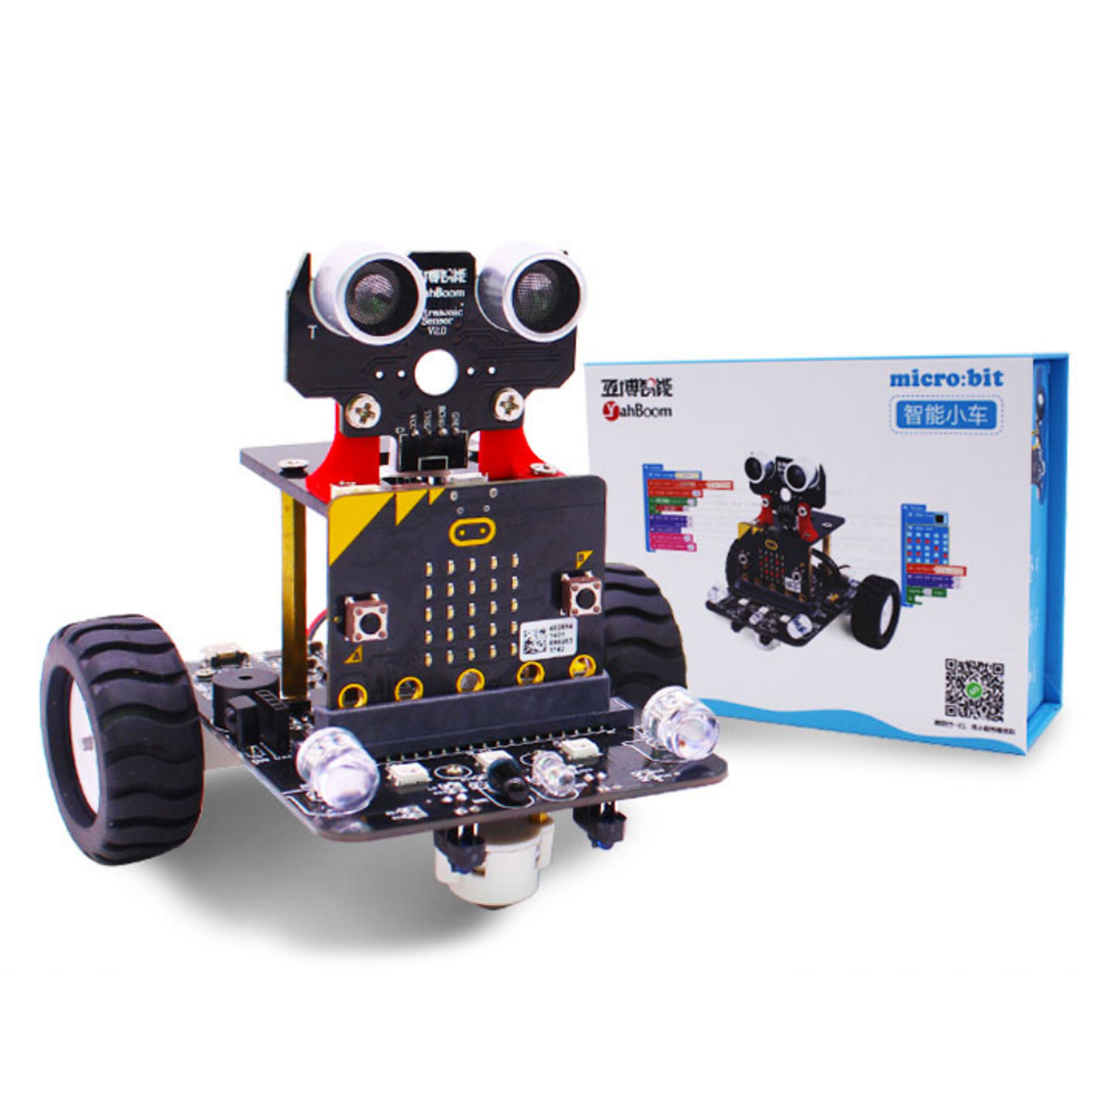 Graphical Programmable Robot Car With Bluetooth IR And Tracking Module Steam Robot Car Toy For Micro:bit BBC (Without Mainboard)